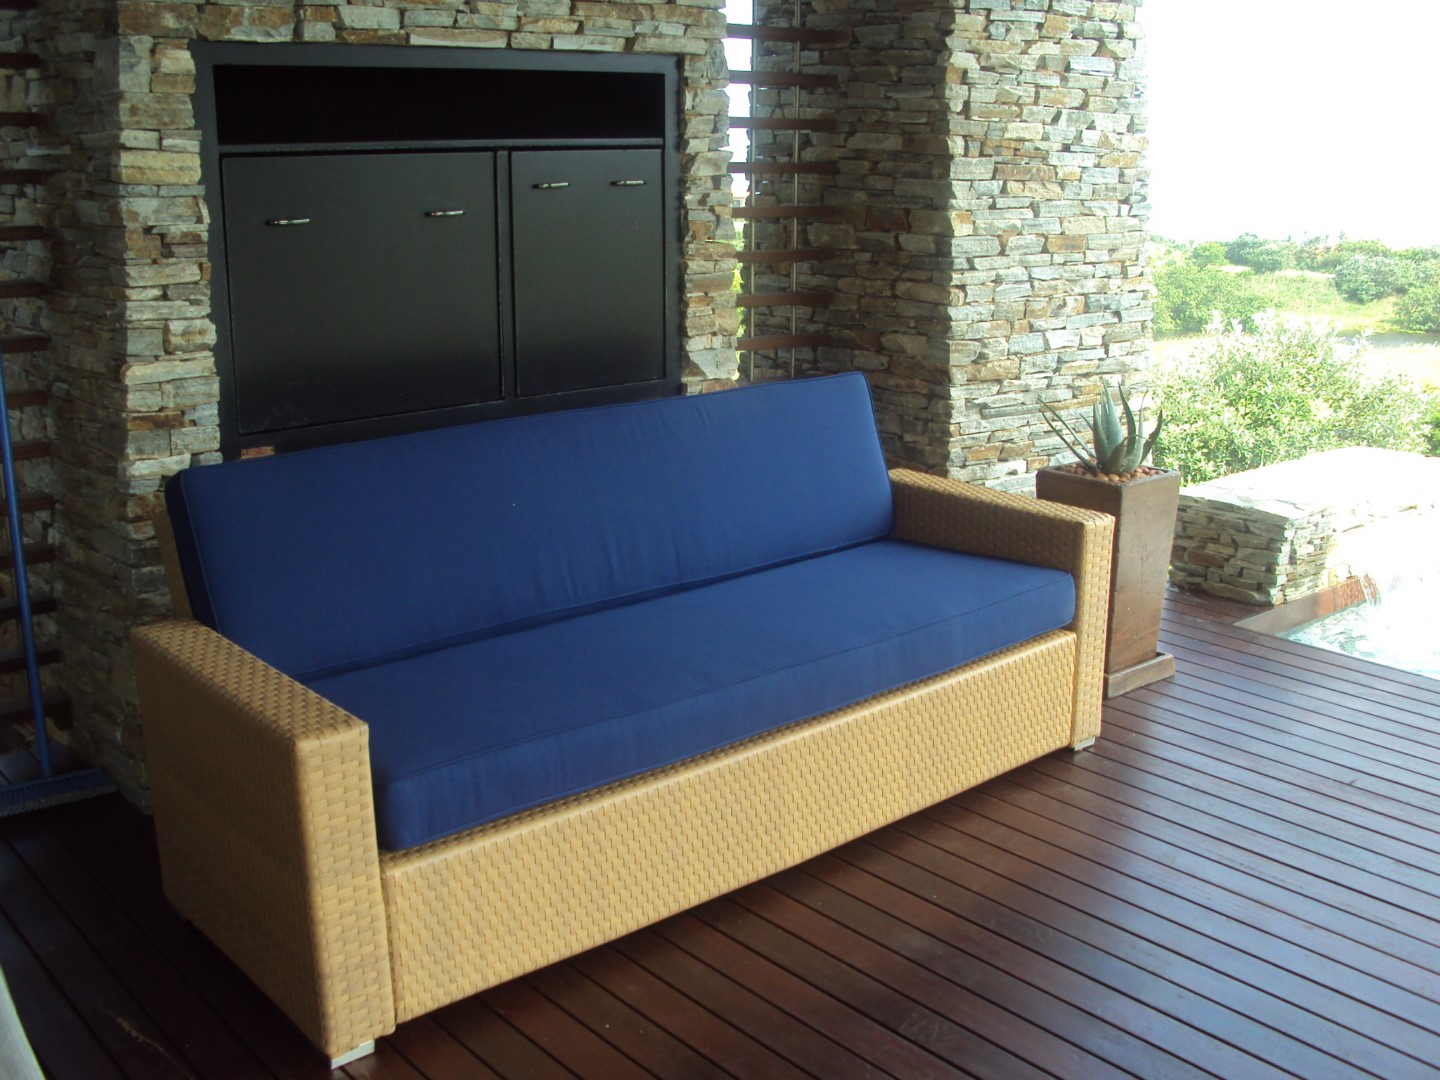 Four seater sofa with blue cushions